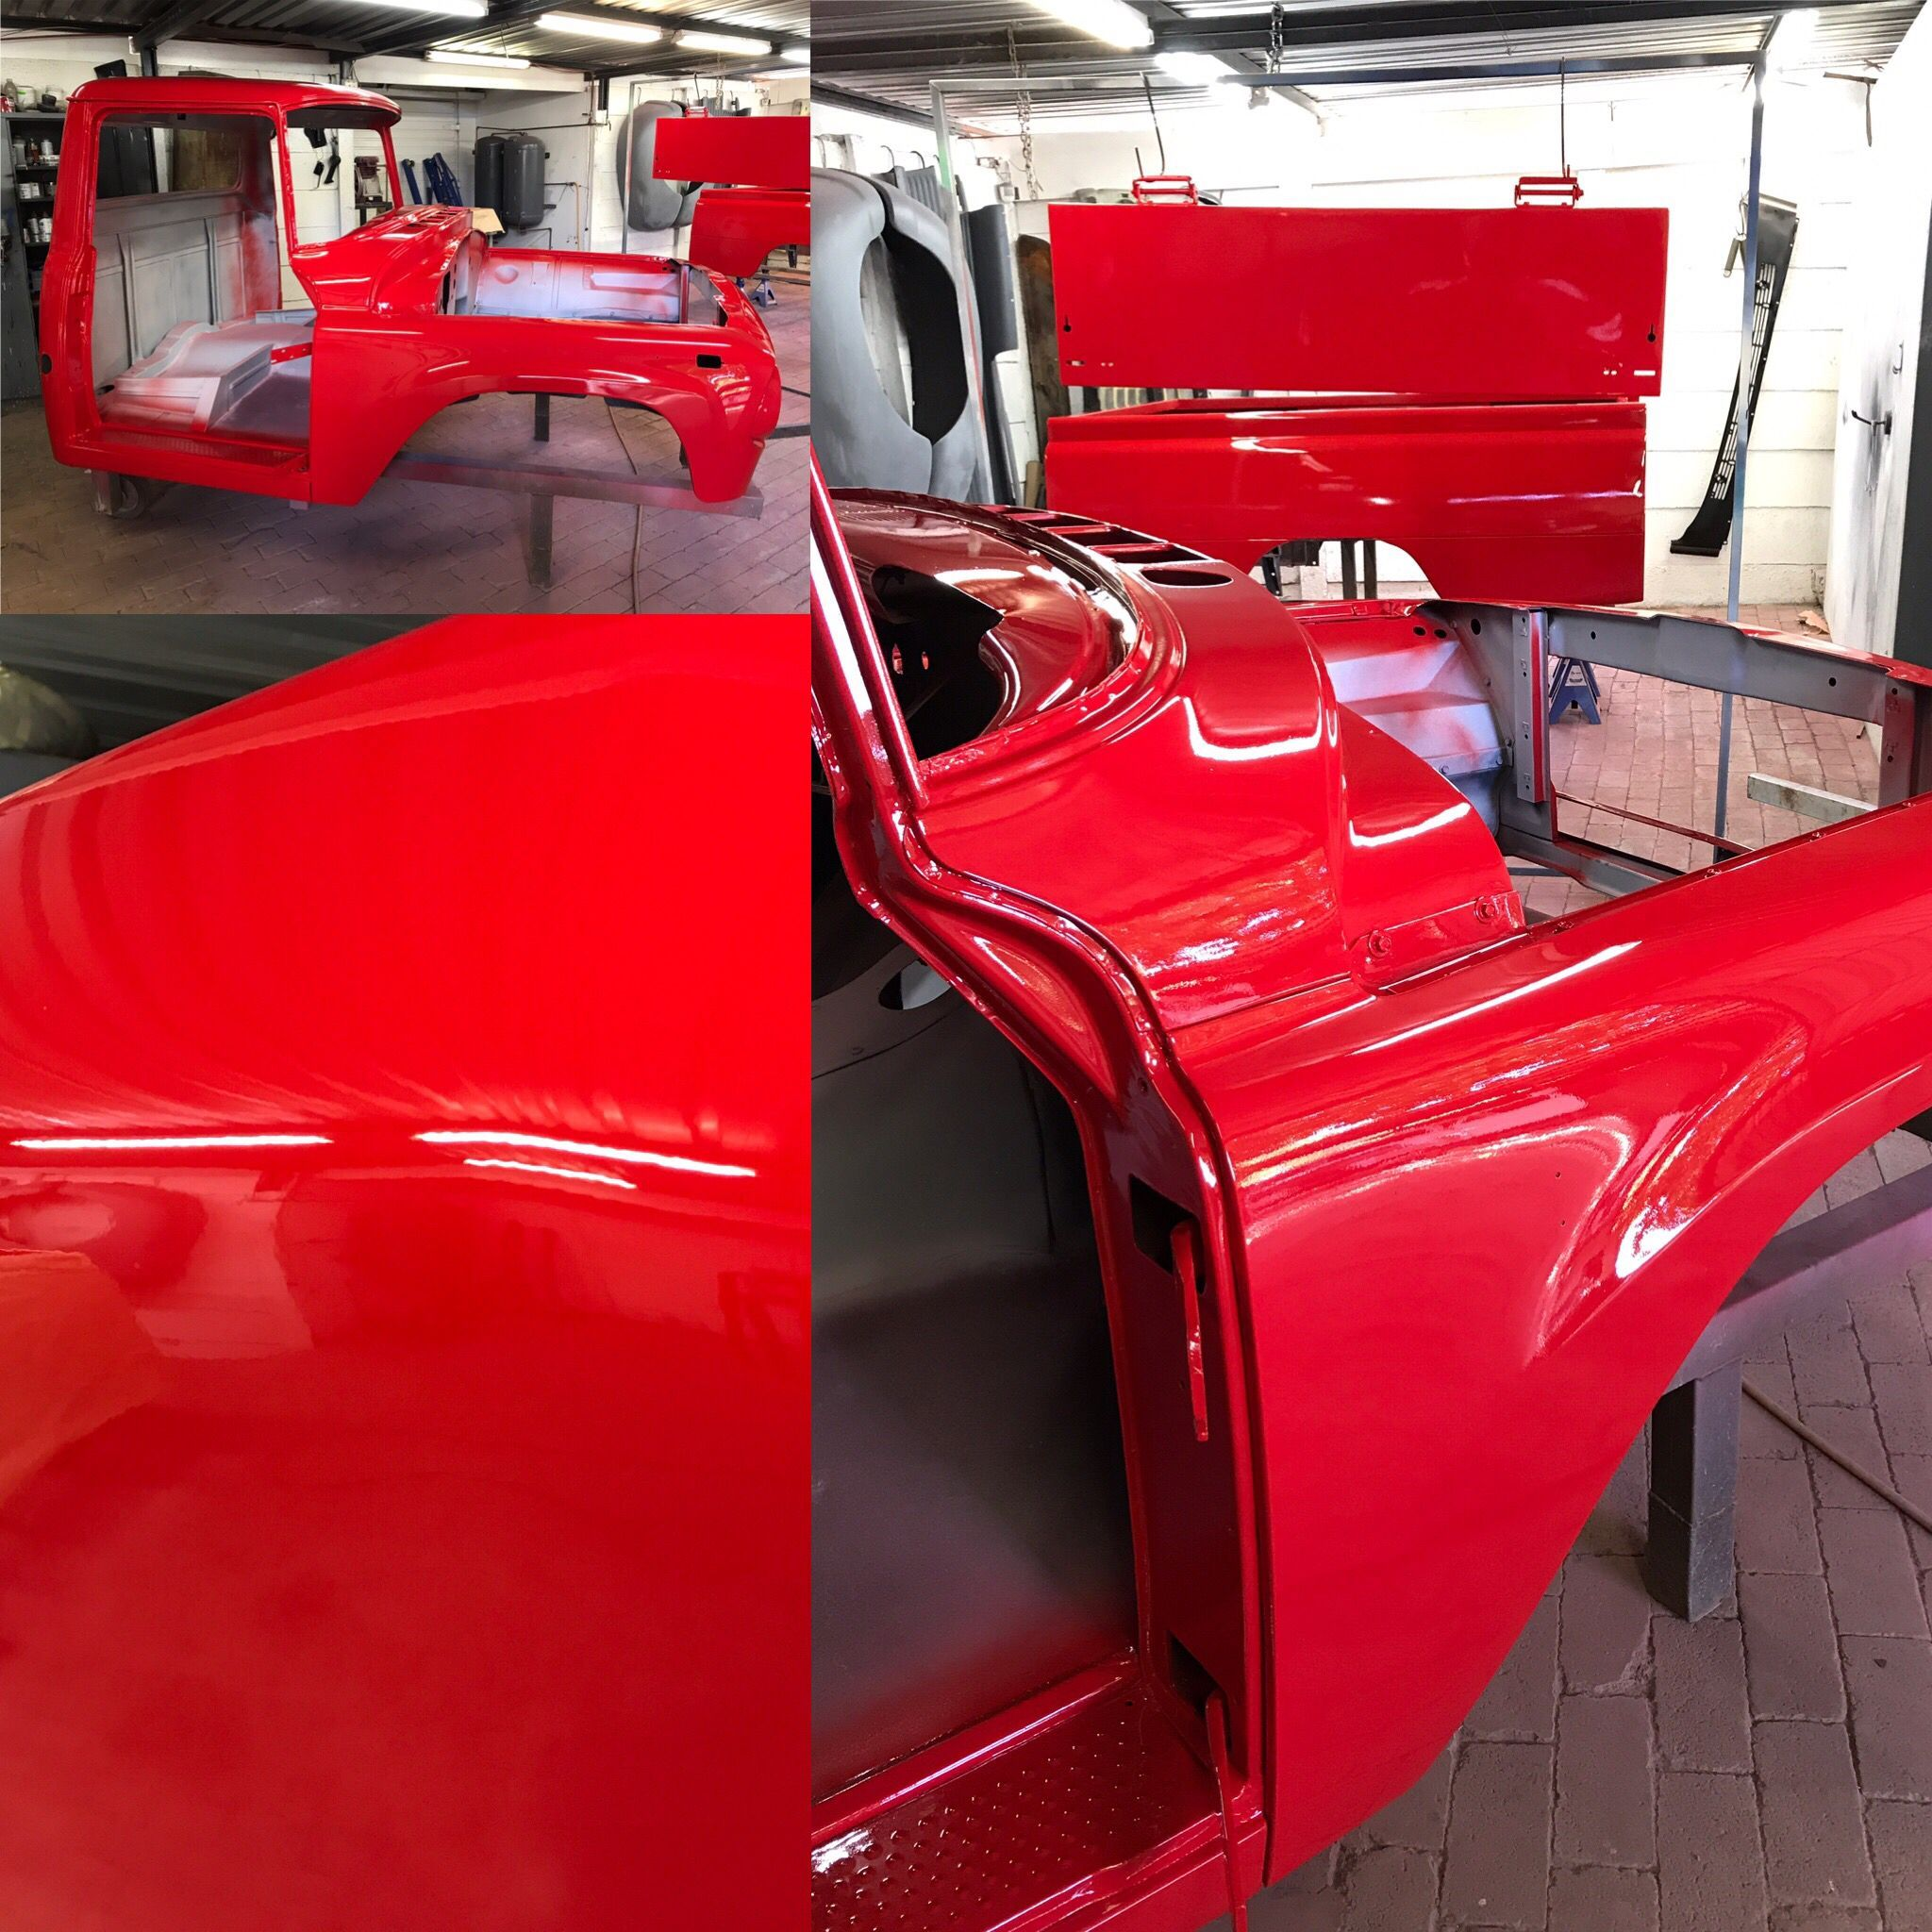 The 908 international in VW Flash red is coming along nicely  Next